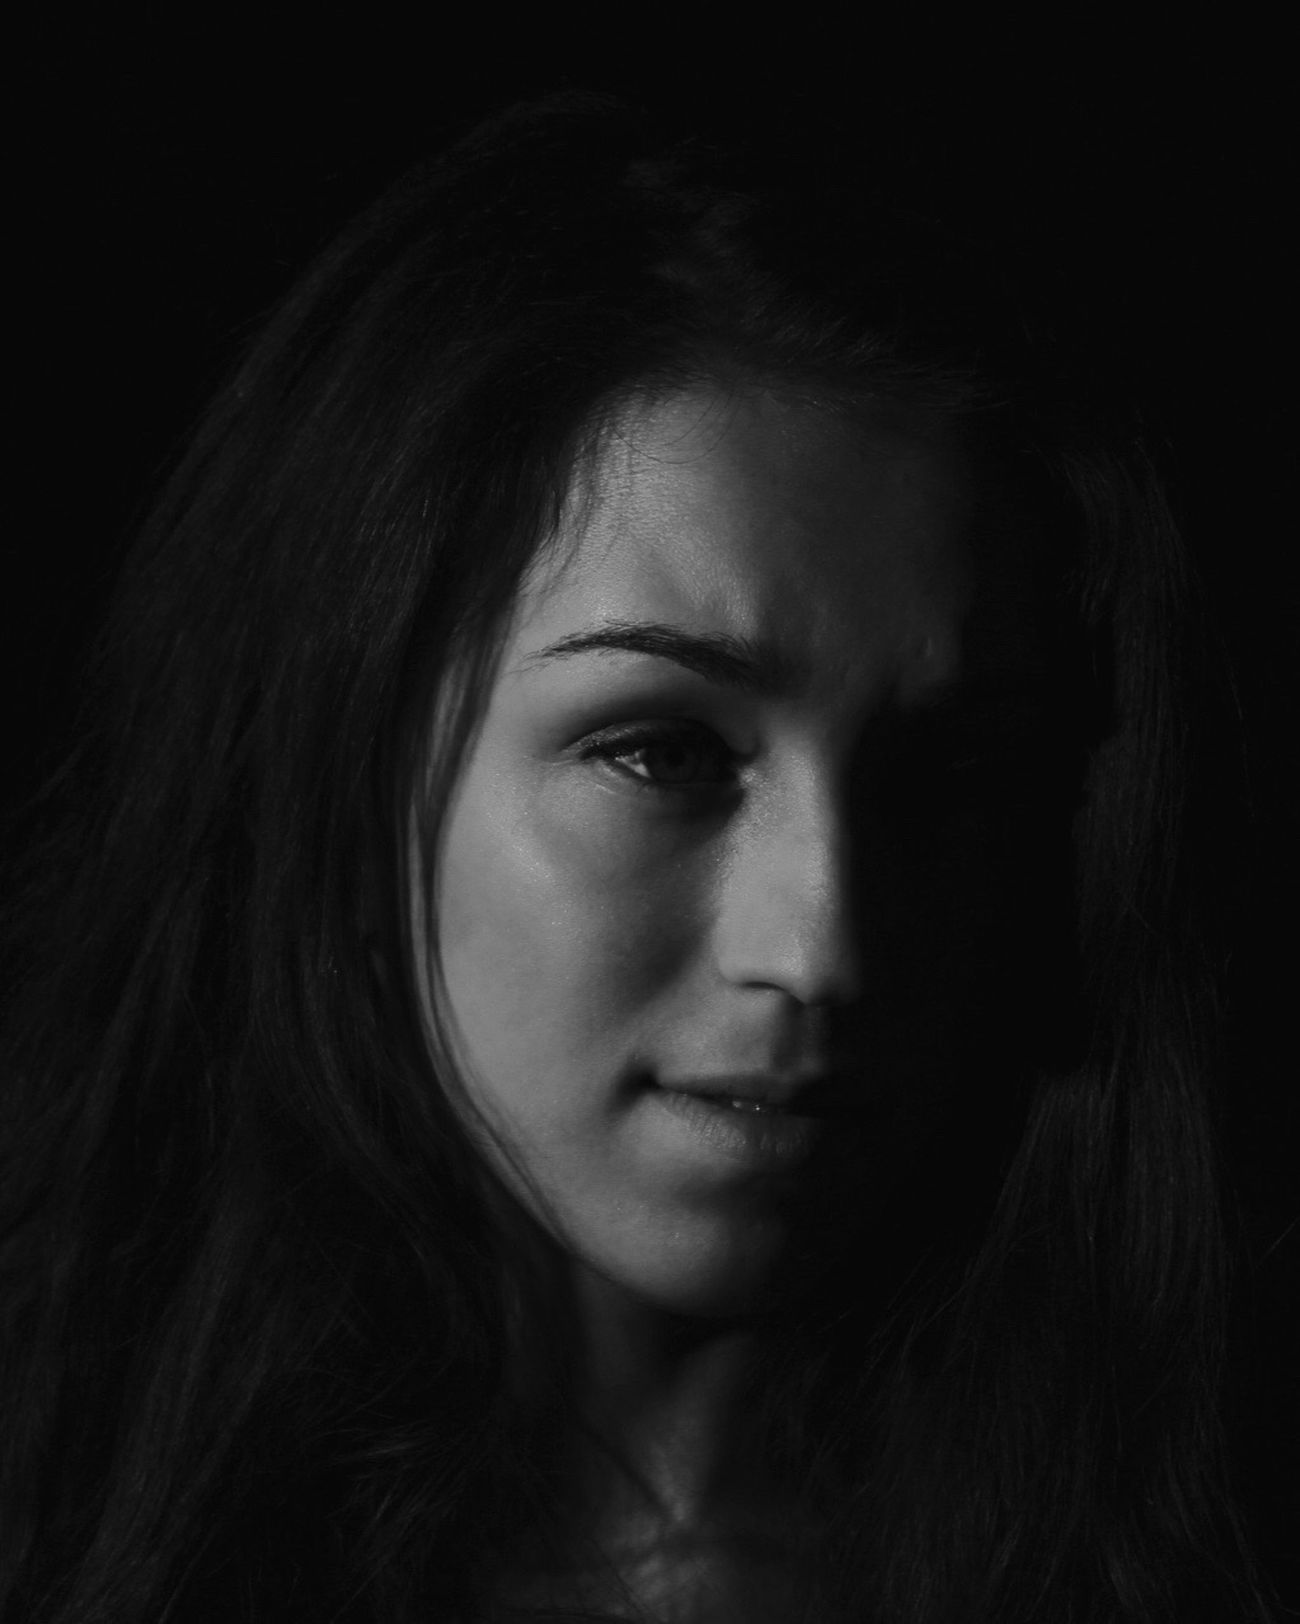 Young Adult Worried Long Hair Young Women One Person Real People Portrait Close-up Black Background Indoors  People Low Key